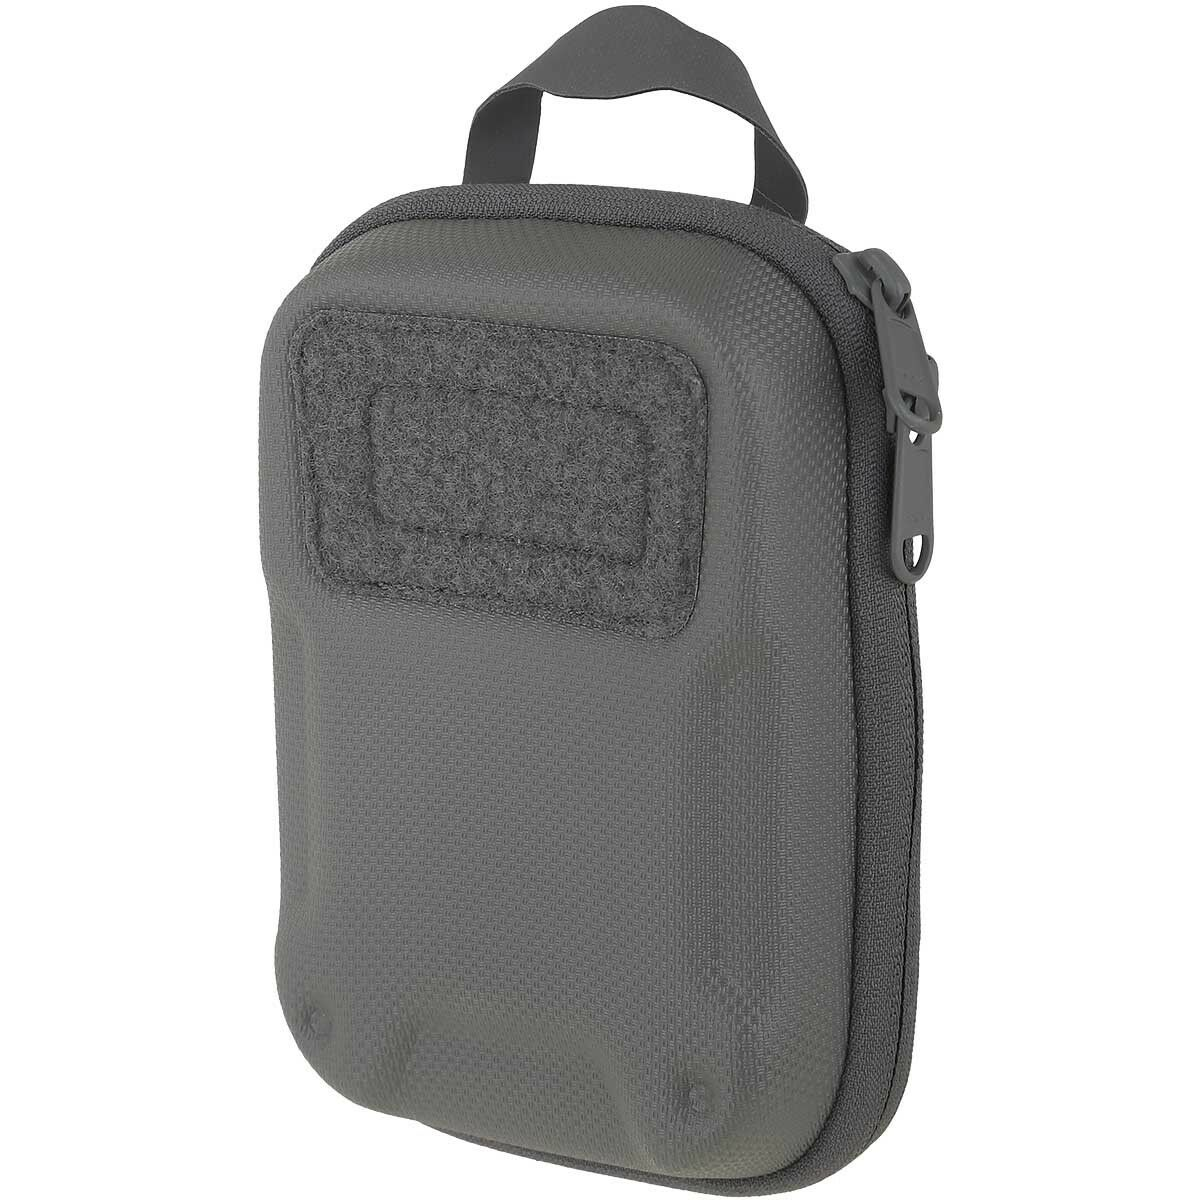 Maxpedition Mini Mini Maxpedition Organizer Agr Hex Ripstop Pochette Rigide Tactique Poche Gris cc20b2